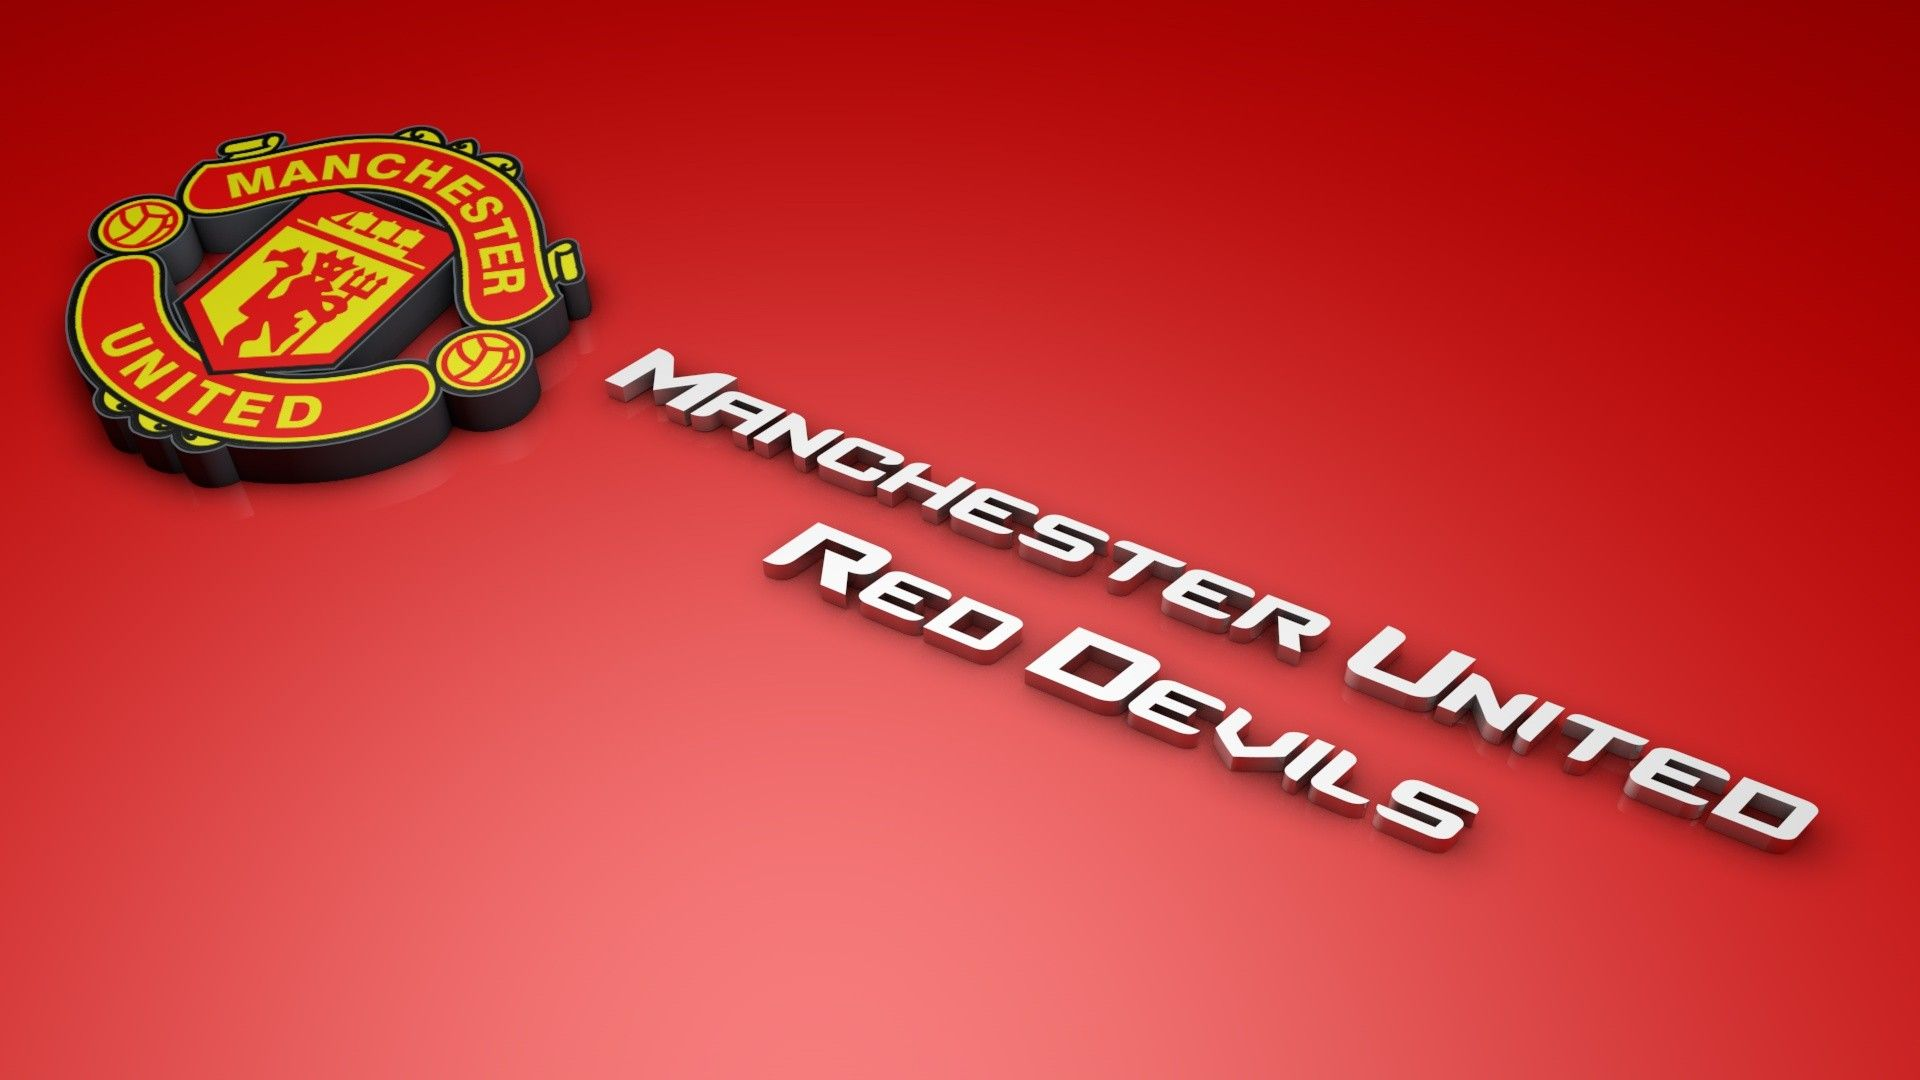 Hd wallpaper manchester united - Man United Wallpapers Wallpaper